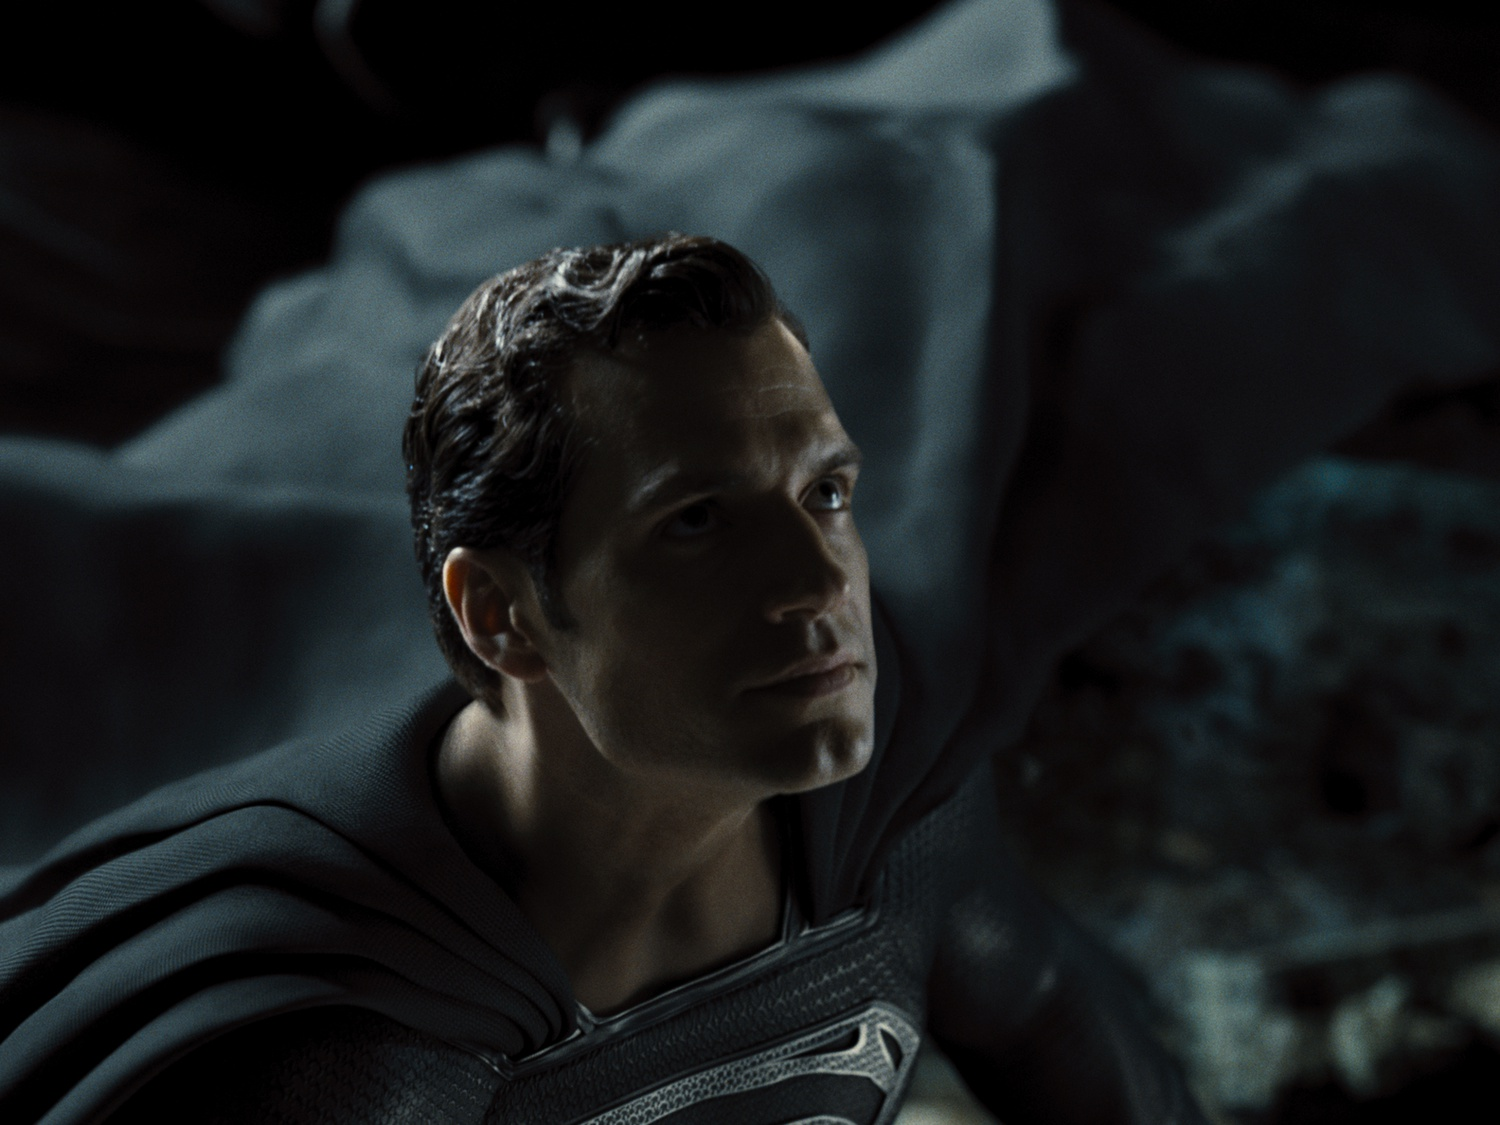 """Henry Cavill stars as Clark Kent / Superman, donning a black suit in """"Zack Snyder's Justice League"""" (2021)"""